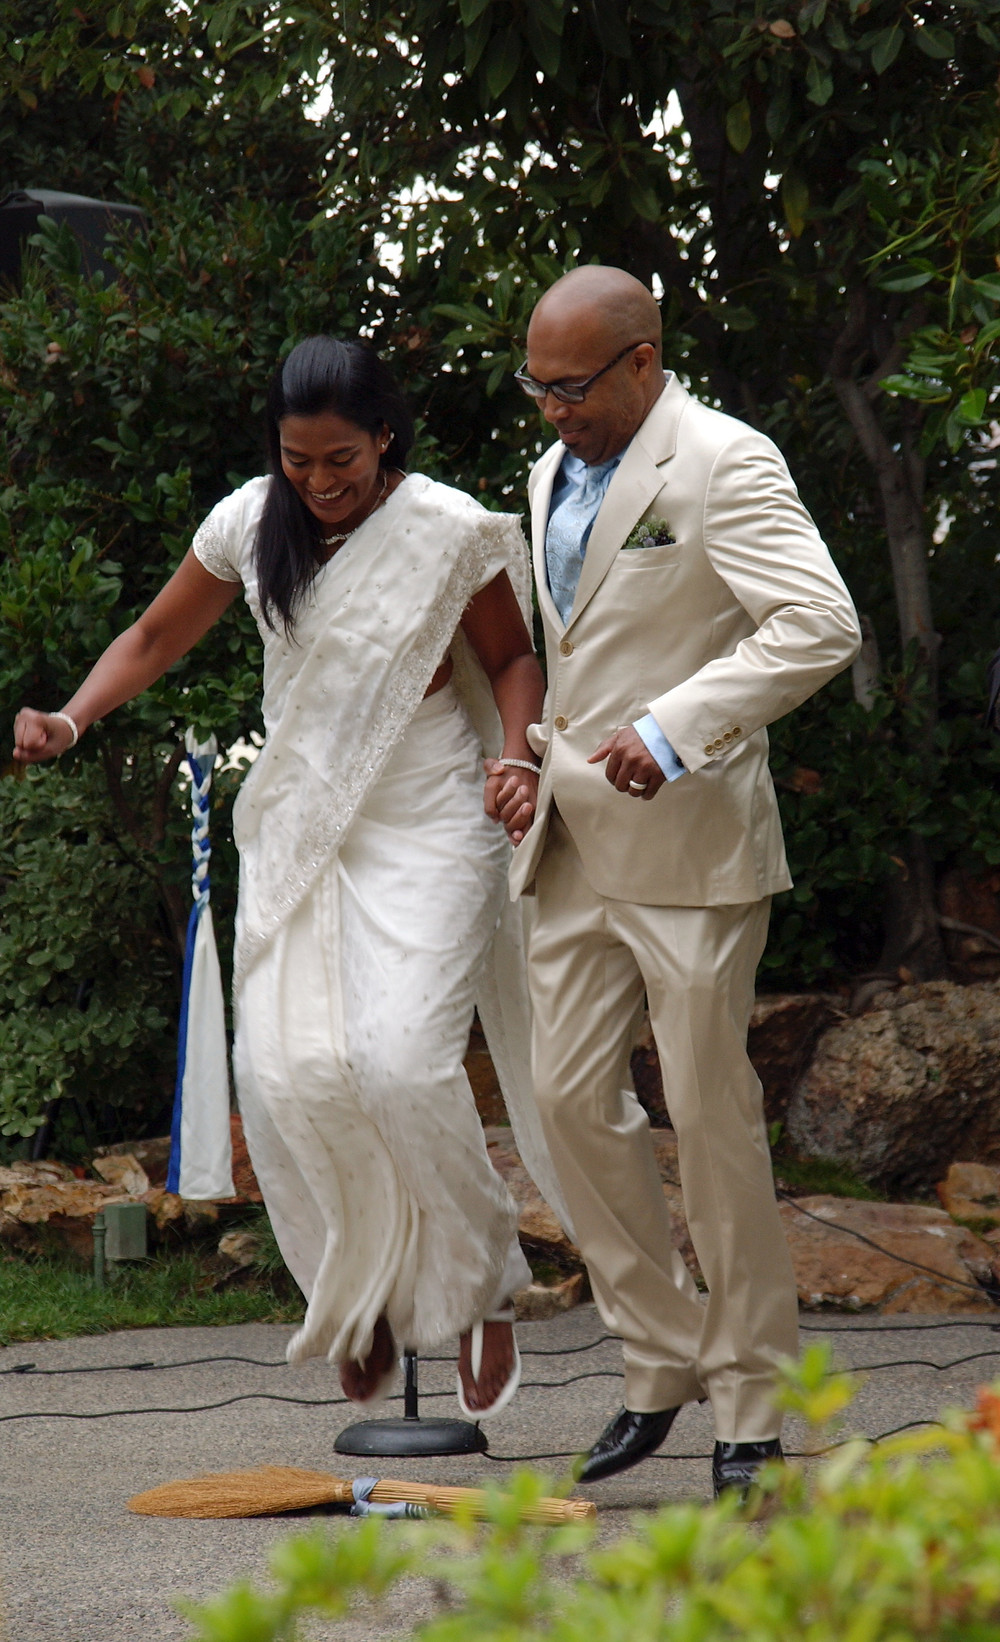 Photo of man and woman couple jumping the broom as part of their wedding ceremony.